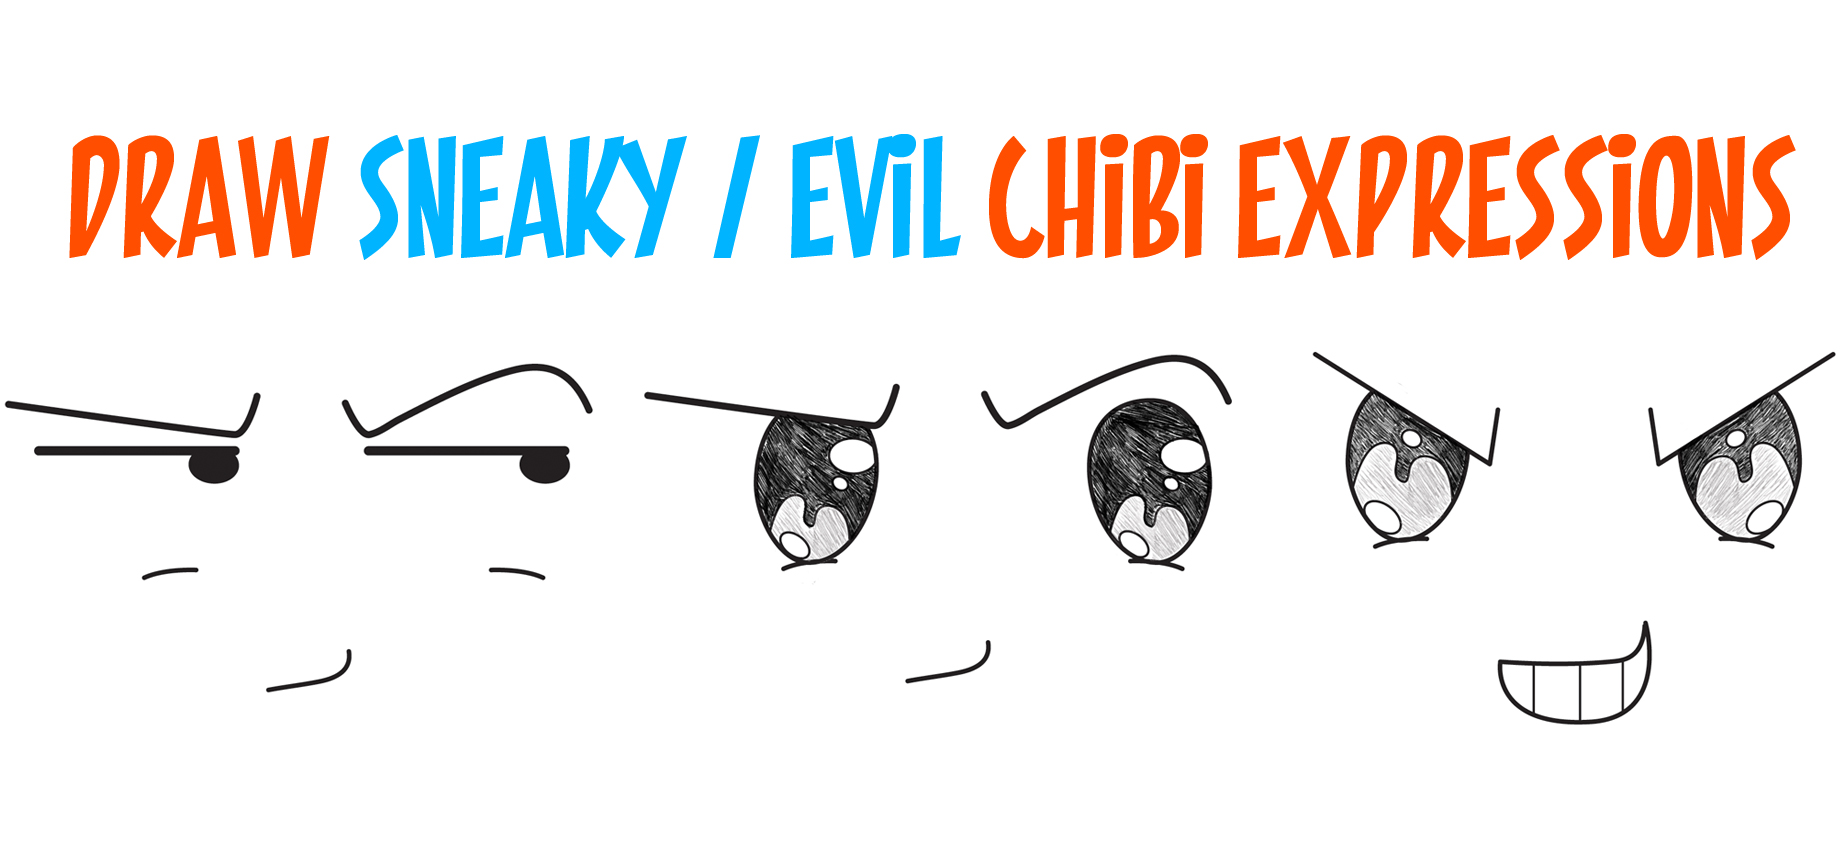 ]sneaky chibi, devious chibi, sly chibi, evil chibi, how to draw evil chibi, how to draw sneaky chibi, chibi emotions, chibi expressions